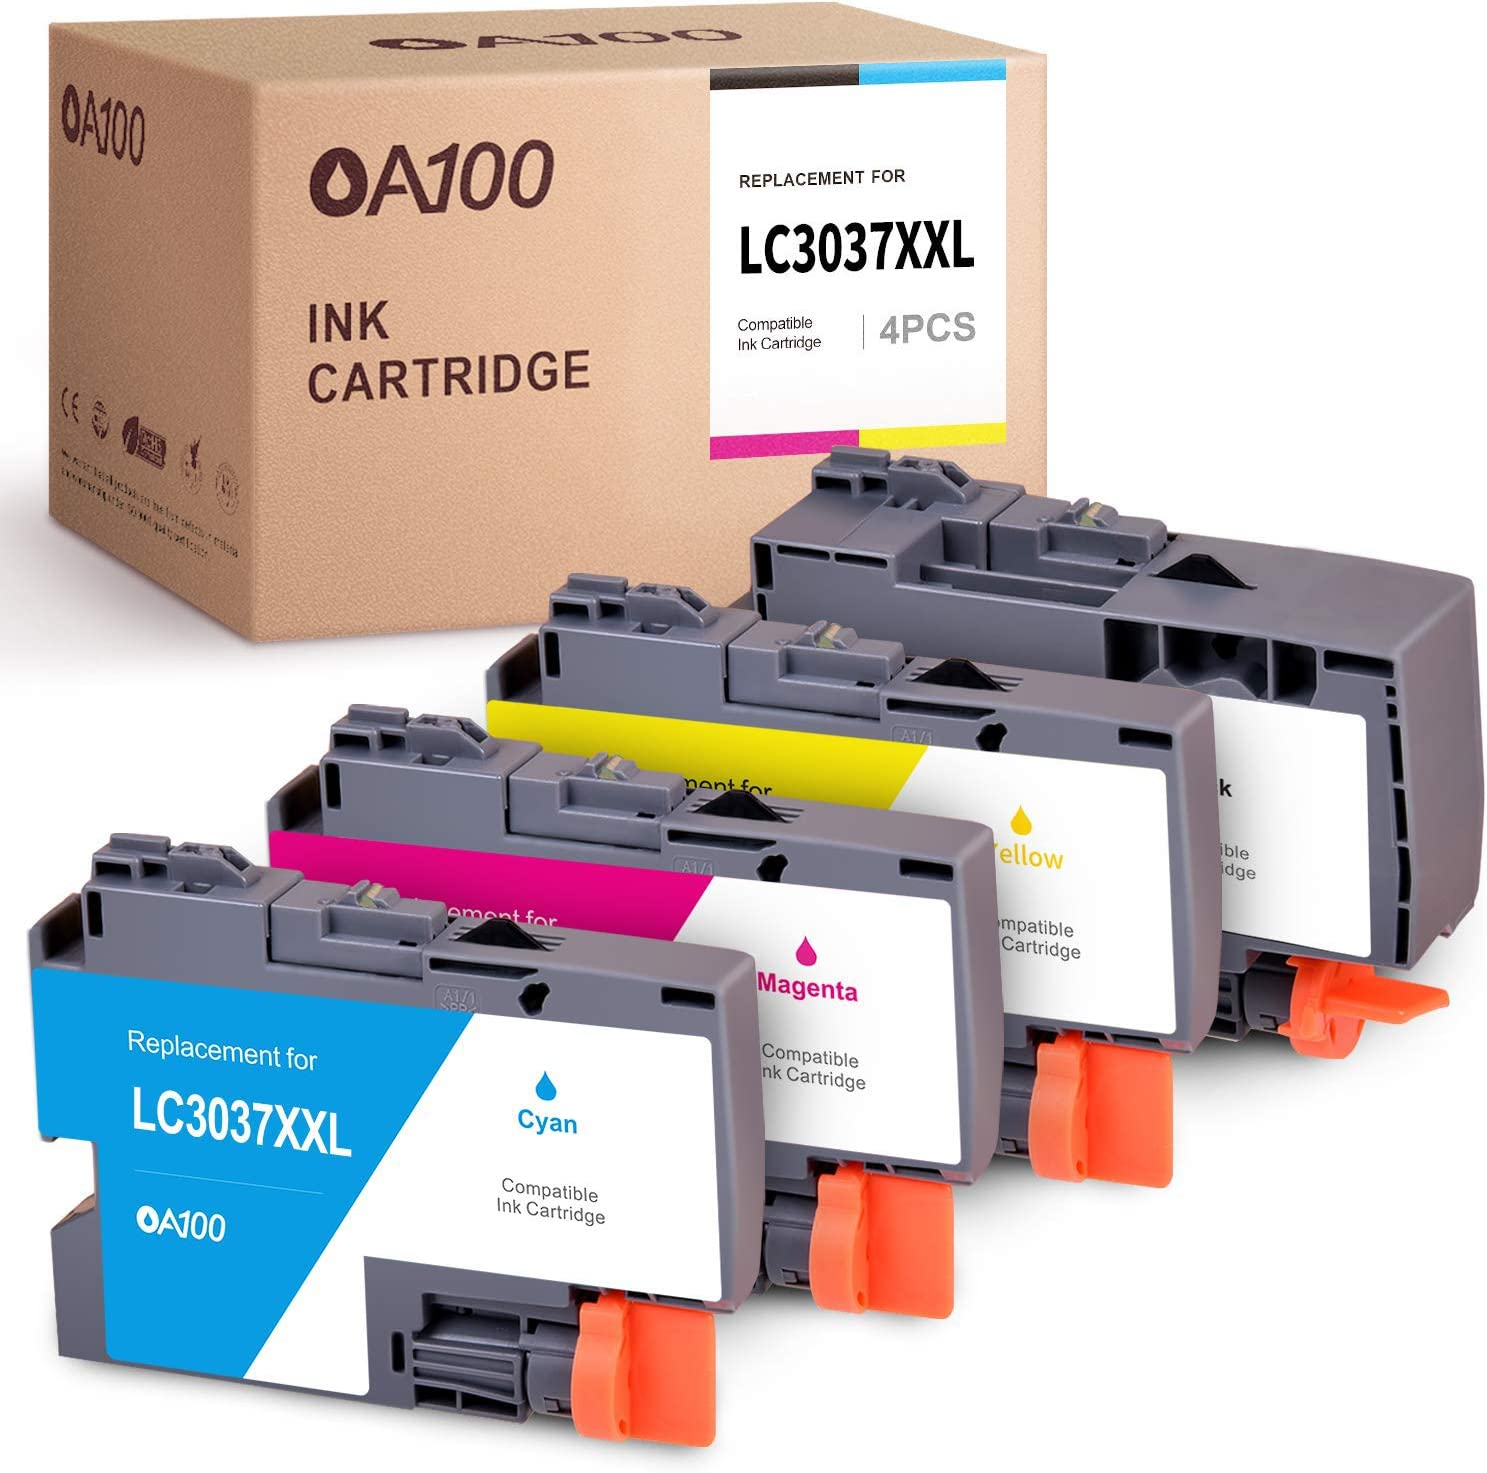 Print.After.Print Compatible Toner Cartridge Replacement for LC3037Y J6545DW XL J6545DW J6945DW Super High Yield Works with: MFC-J5845DW J5845DW XL Yellow J5945DW